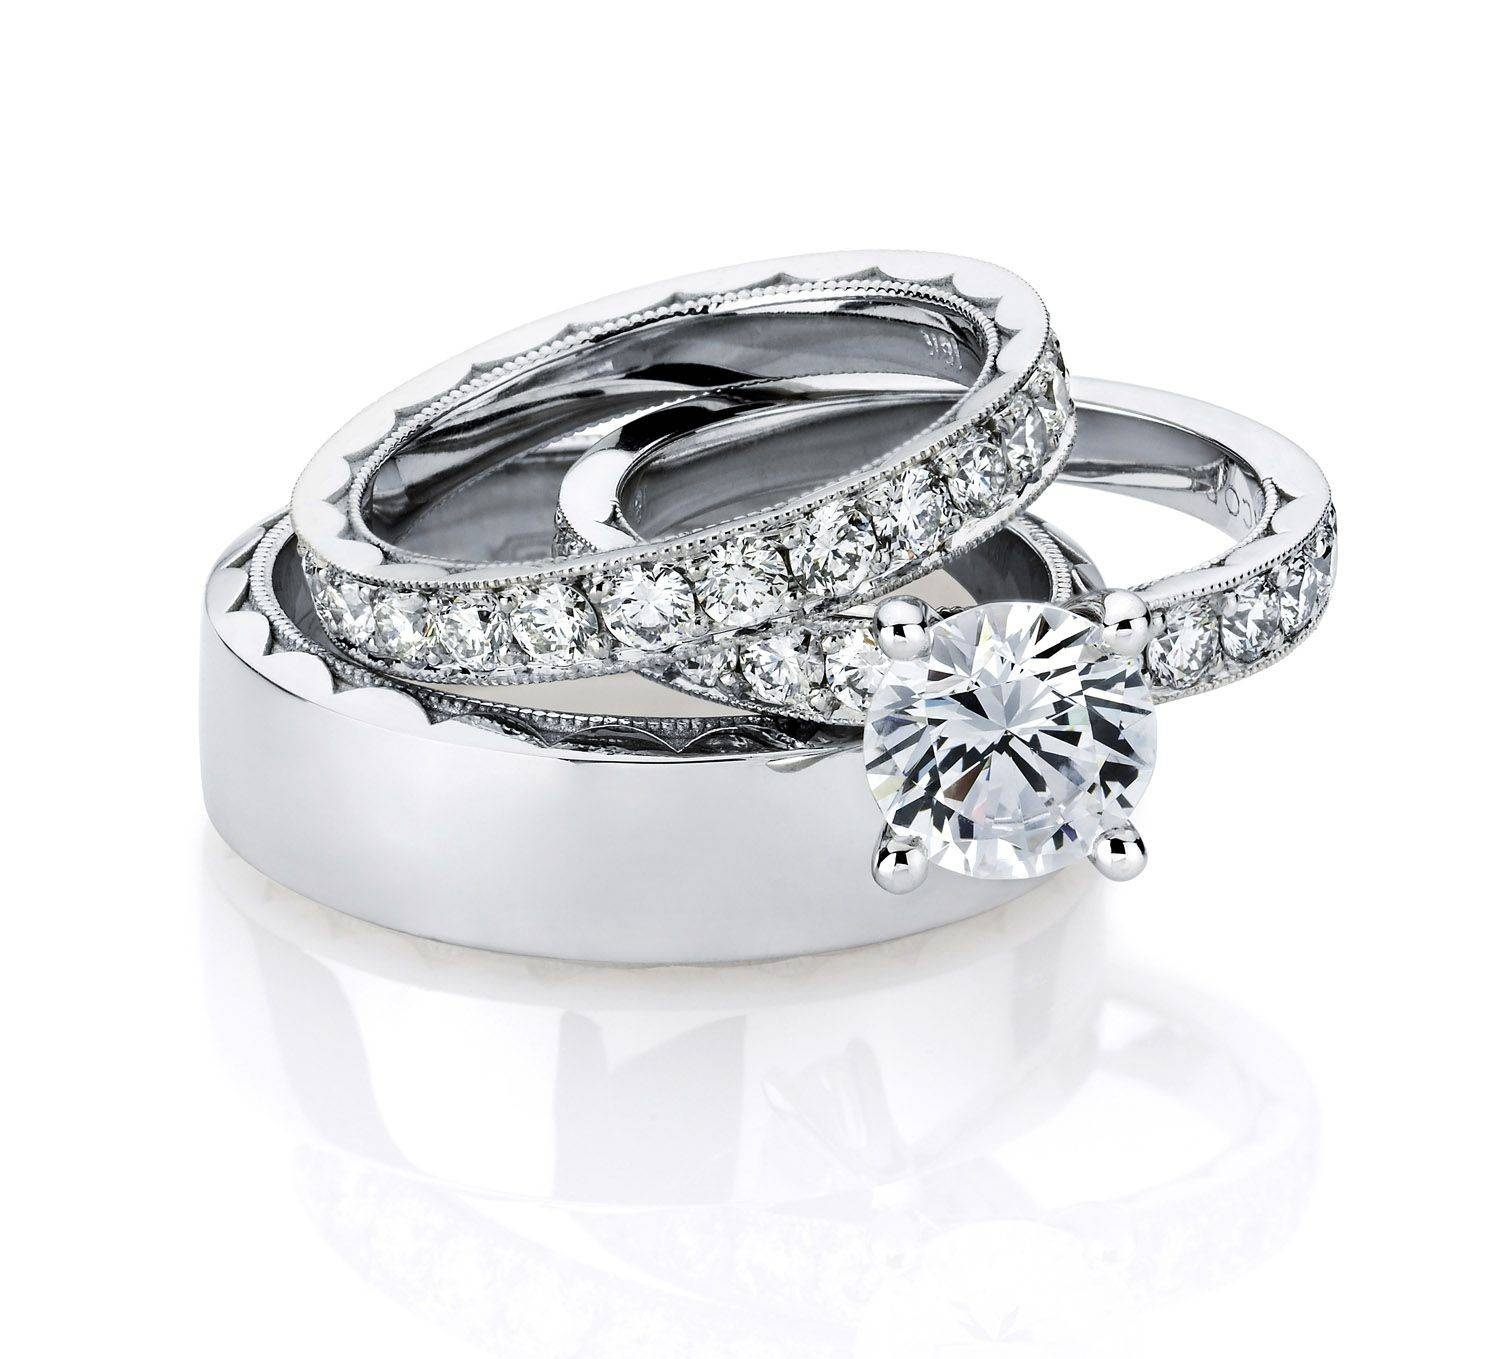 Jewelry Rings: Inexpensive Wedding Rings For Her Ring Sets Him And Pertaining To Engagement Ring Sets For Him And Her (View 7 of 15)